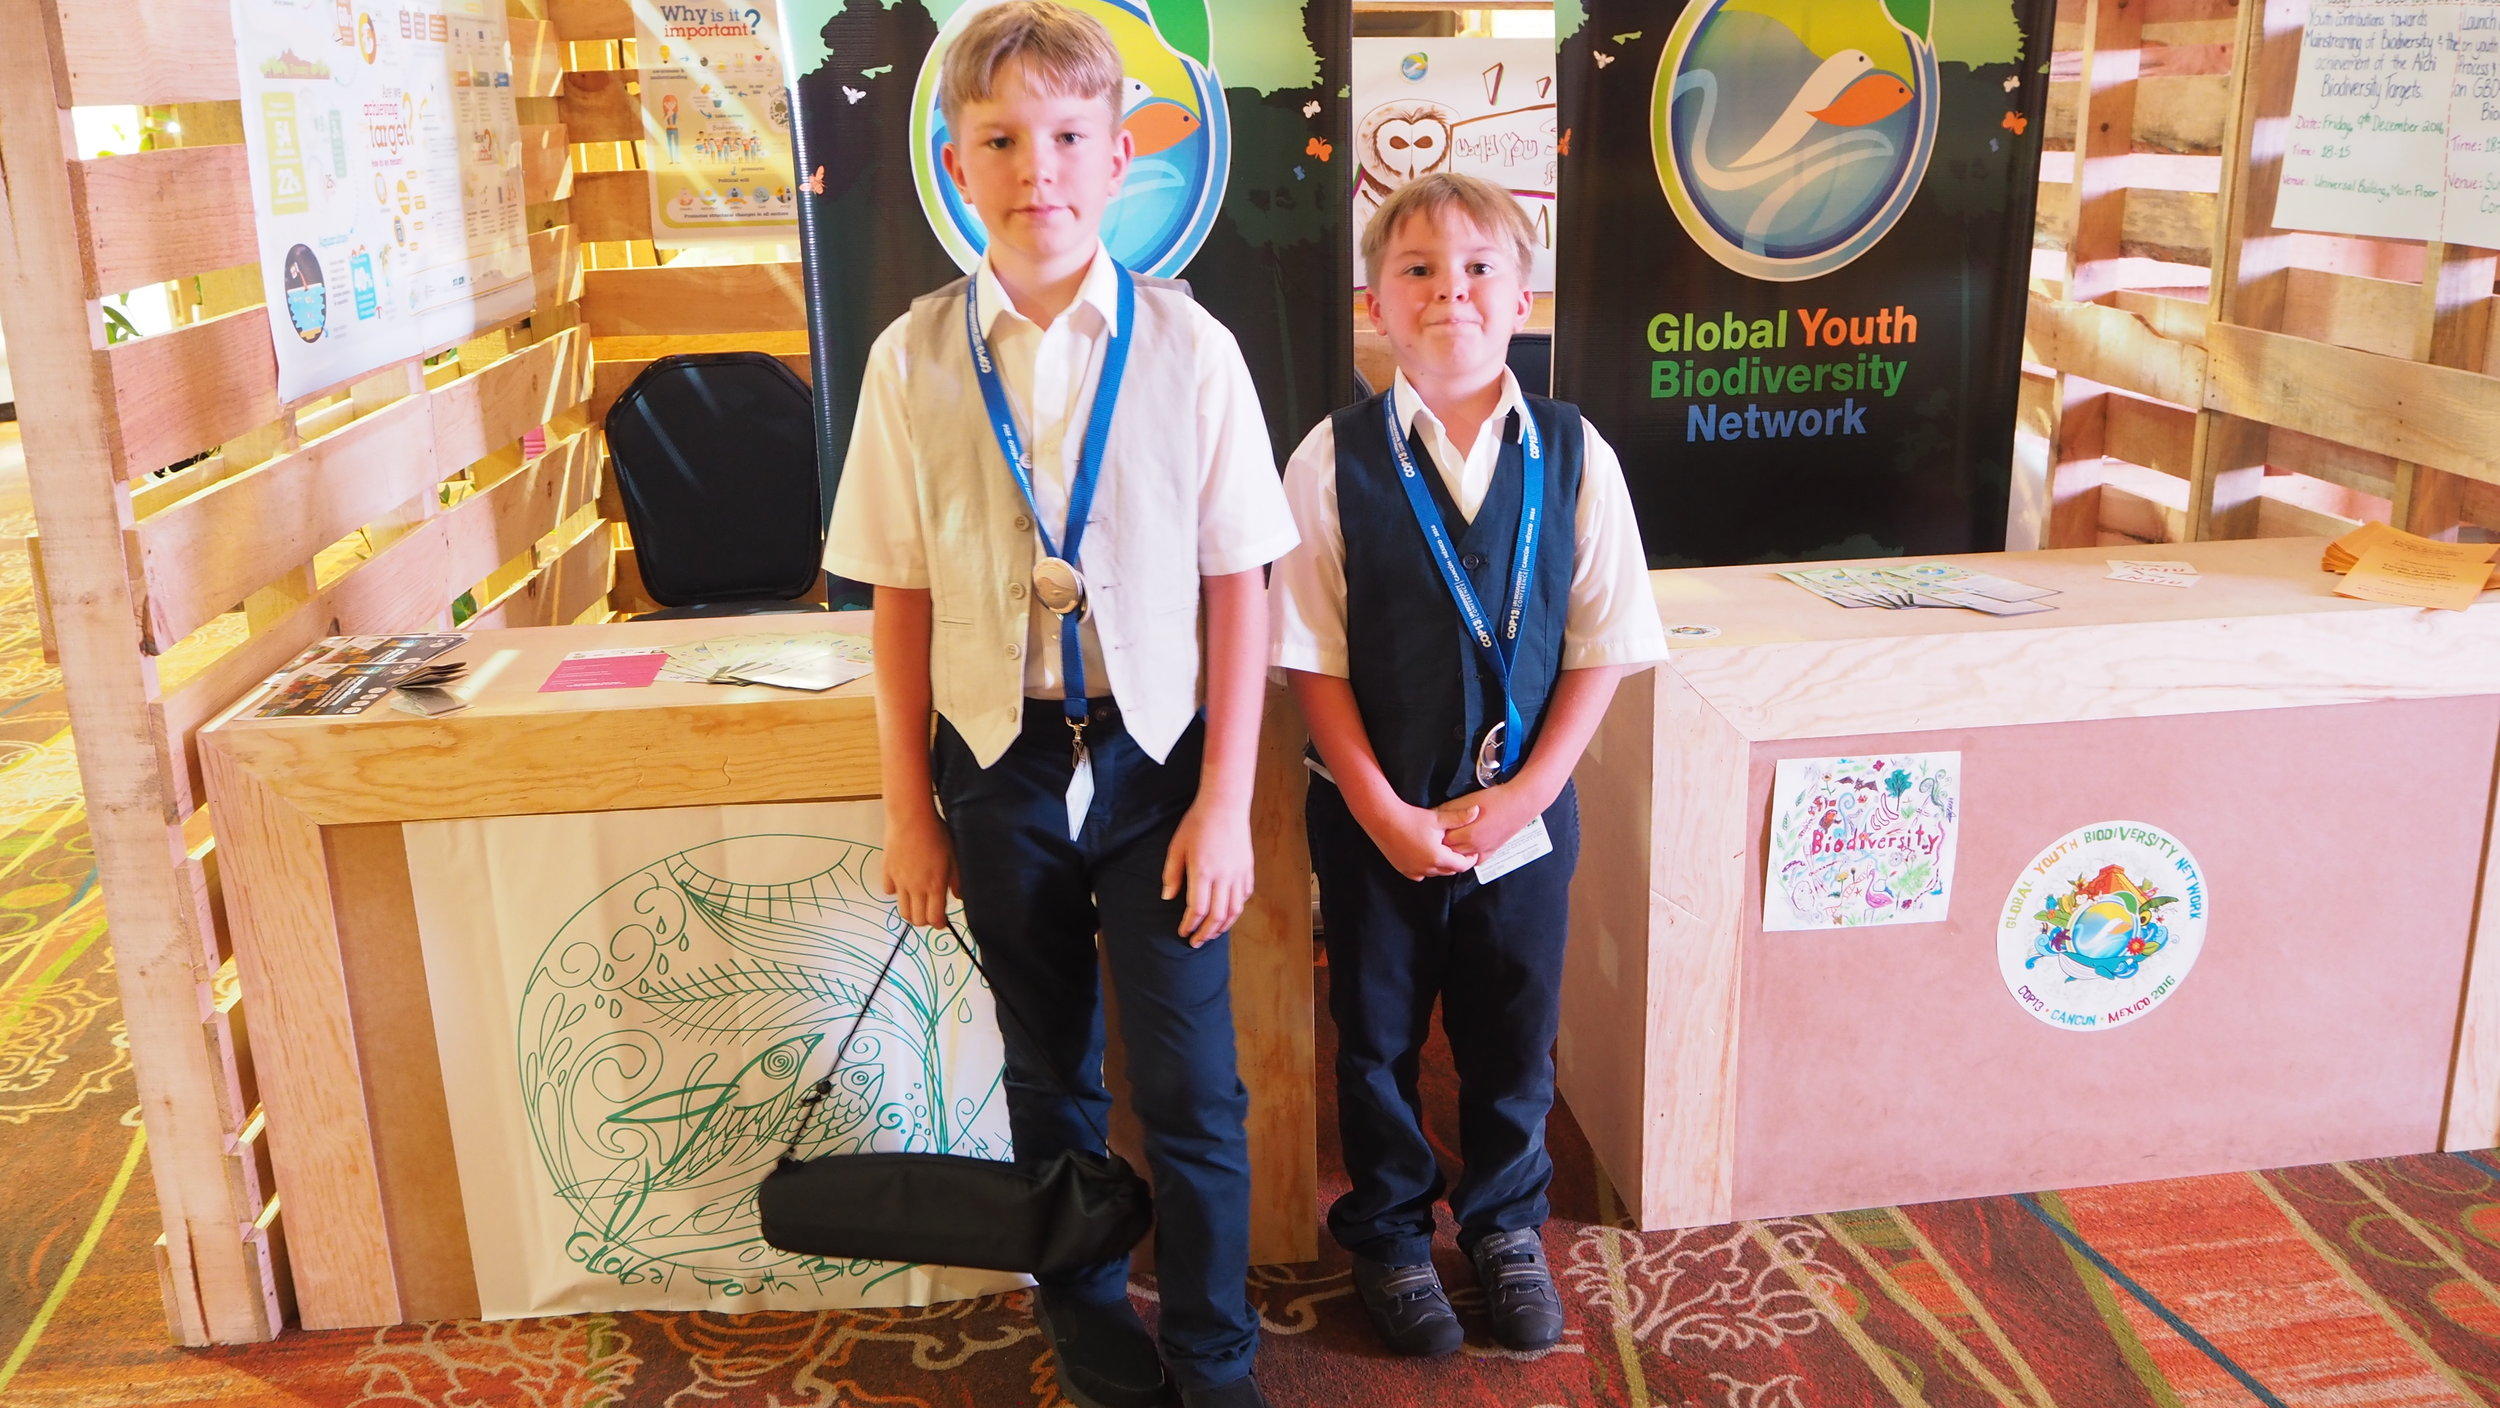 Child Author Jona David (left) and Child UN SDG Ambassador Nico Cordonier-Gehring (right)